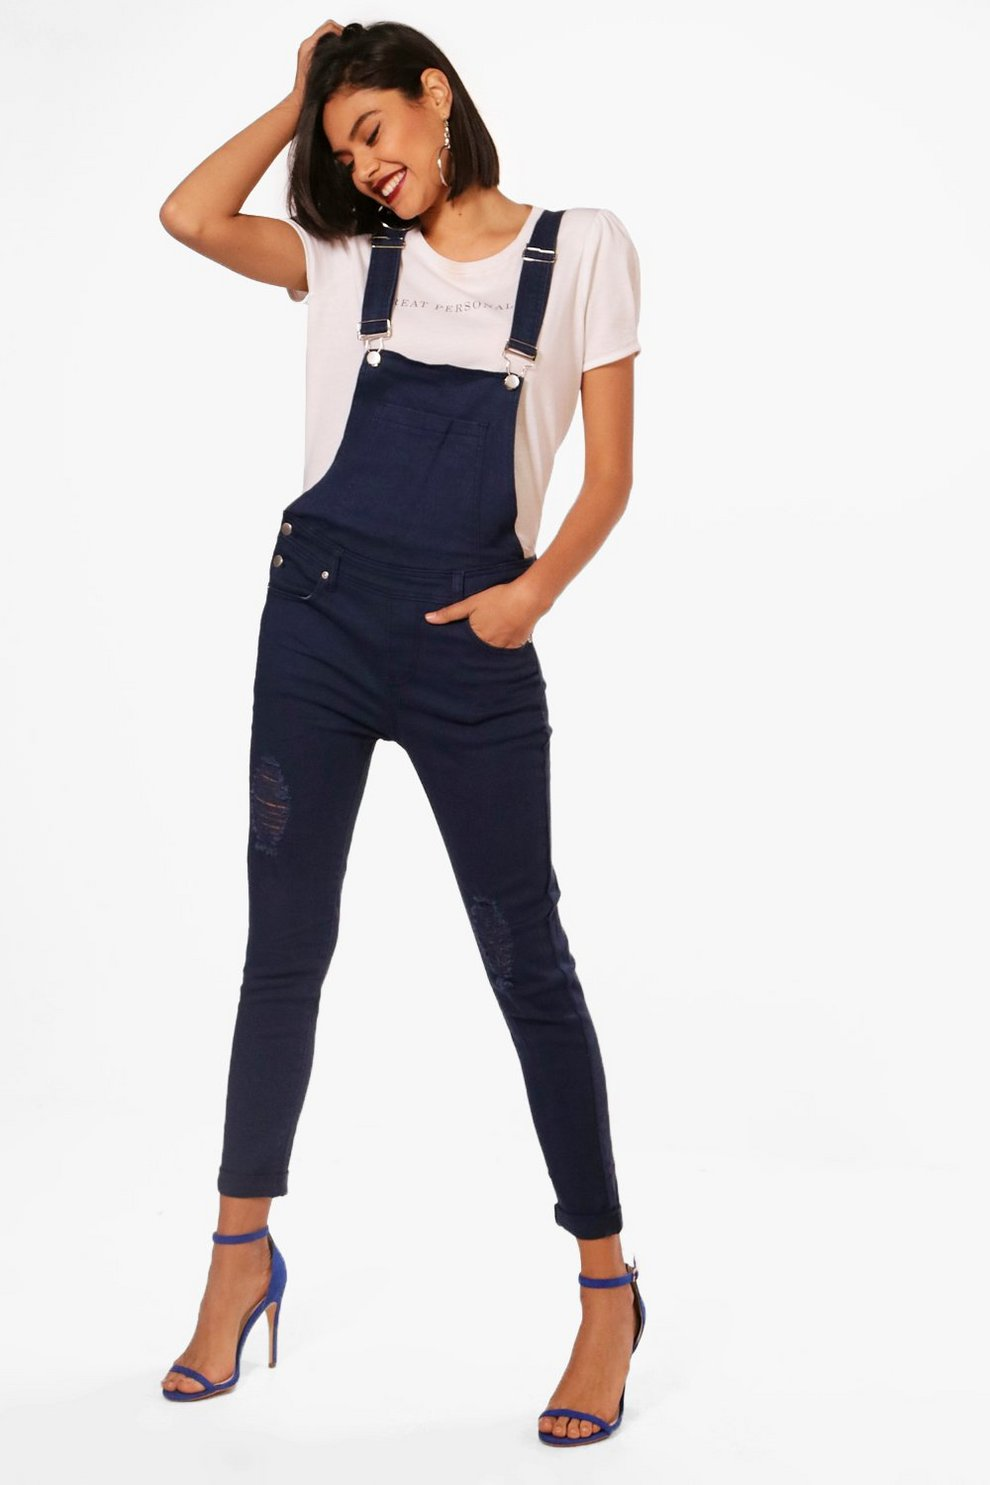 Sale Boohoo Slim Fit Distressed Denim Dungarees Extremely Get To Buy Cheap Price TChWWUk7P1